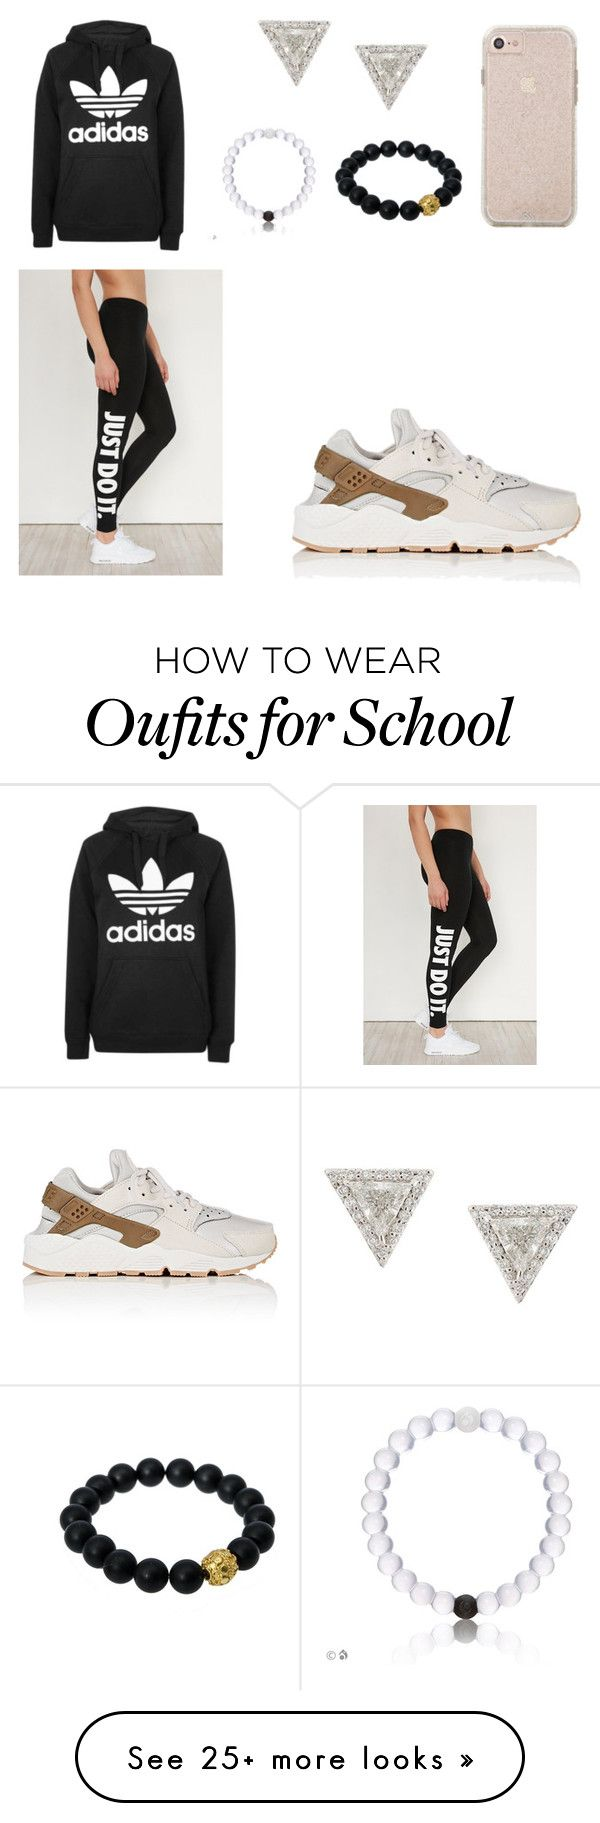 """HIGH SCHOOL STYLE"" by mgarcia-iii on Polyvore featuring Lizzie Mandler, Berluti, NIKE and Topshop"